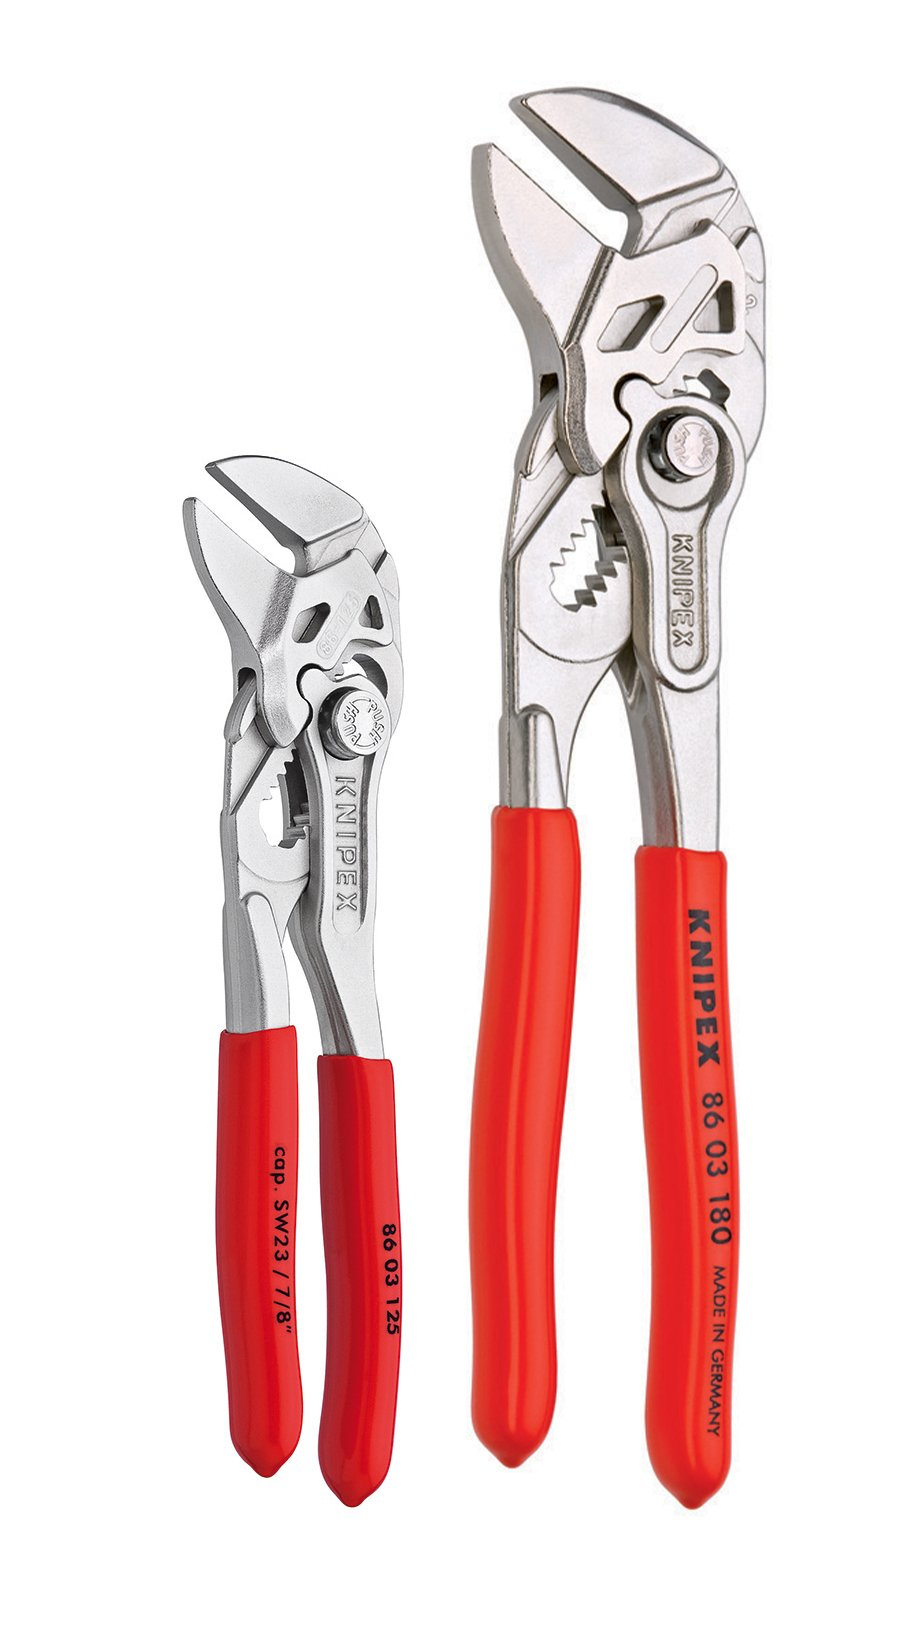 KNIPEX Tools 9K 00 80 121 US Small Pliers Wrench Tool Set (2 Piece) by KNIPEX Tools